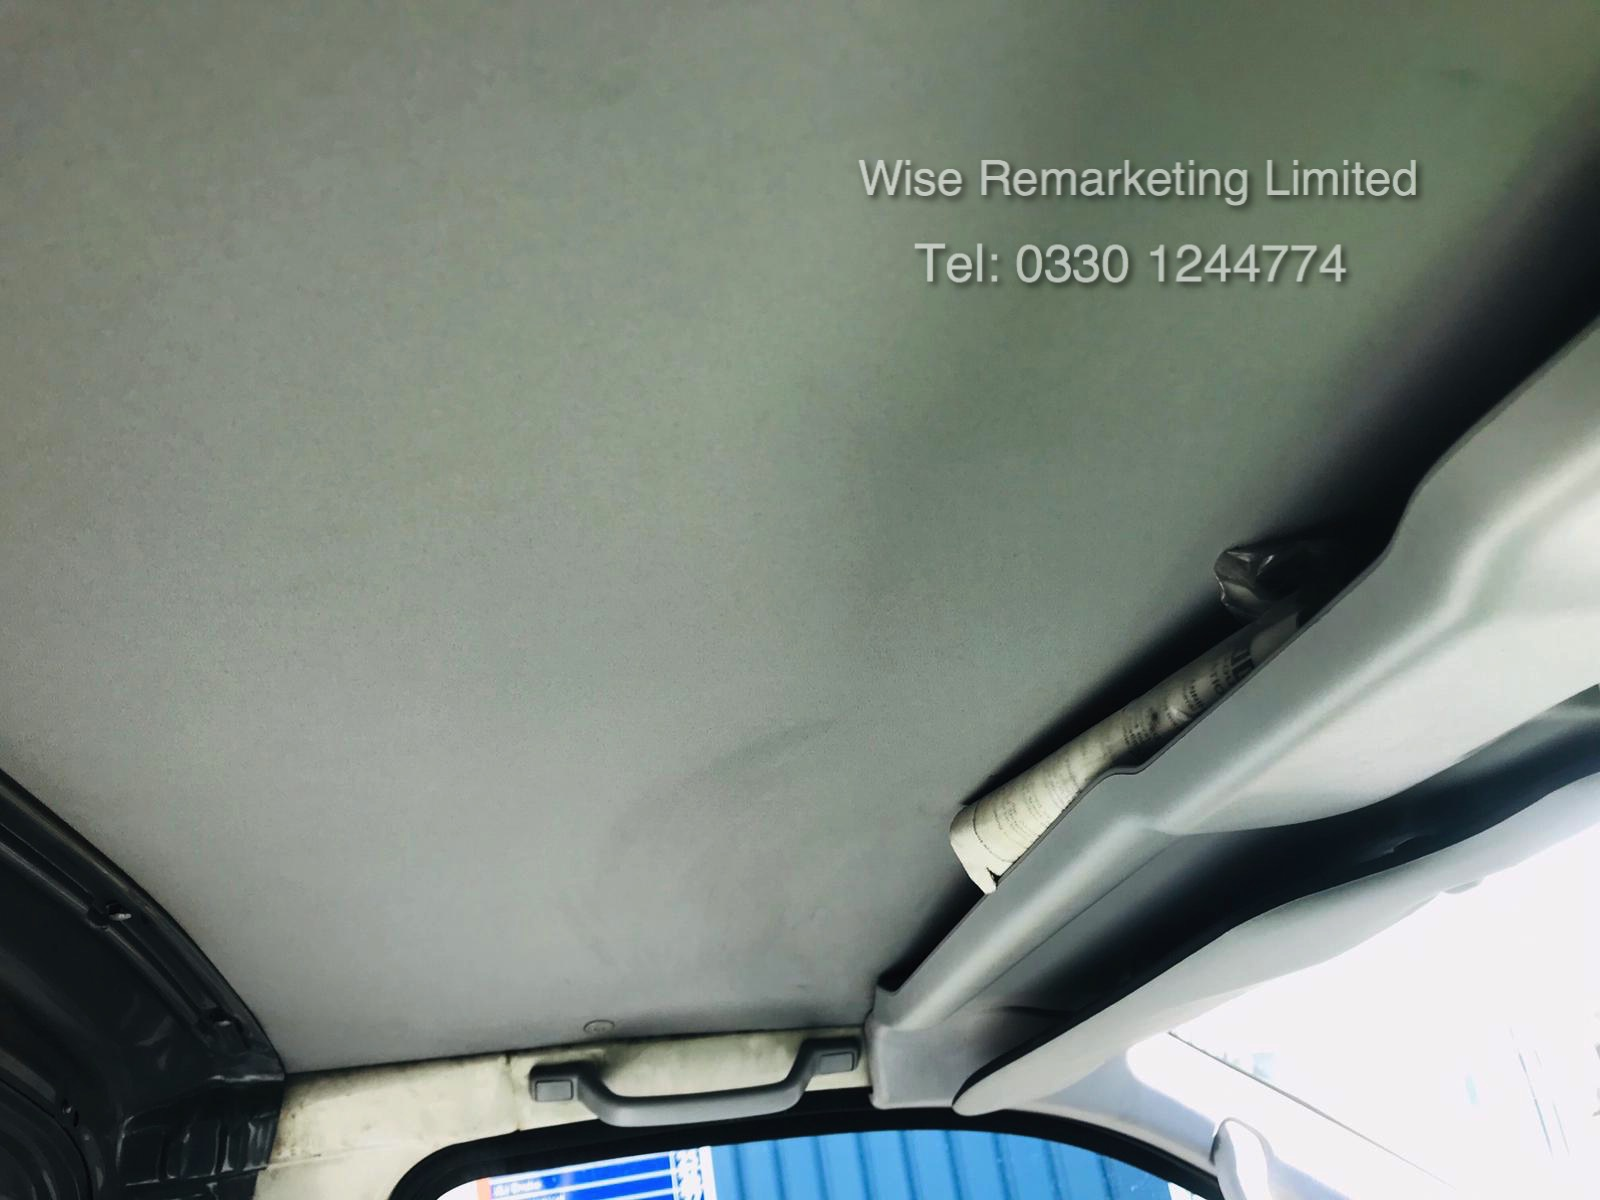 Toyota Hiace 300 GS 2.5 D4D - 2003 03 Reg - 1 Keeper From New - 3 Seater - Roof Rack - Image 11 of 15